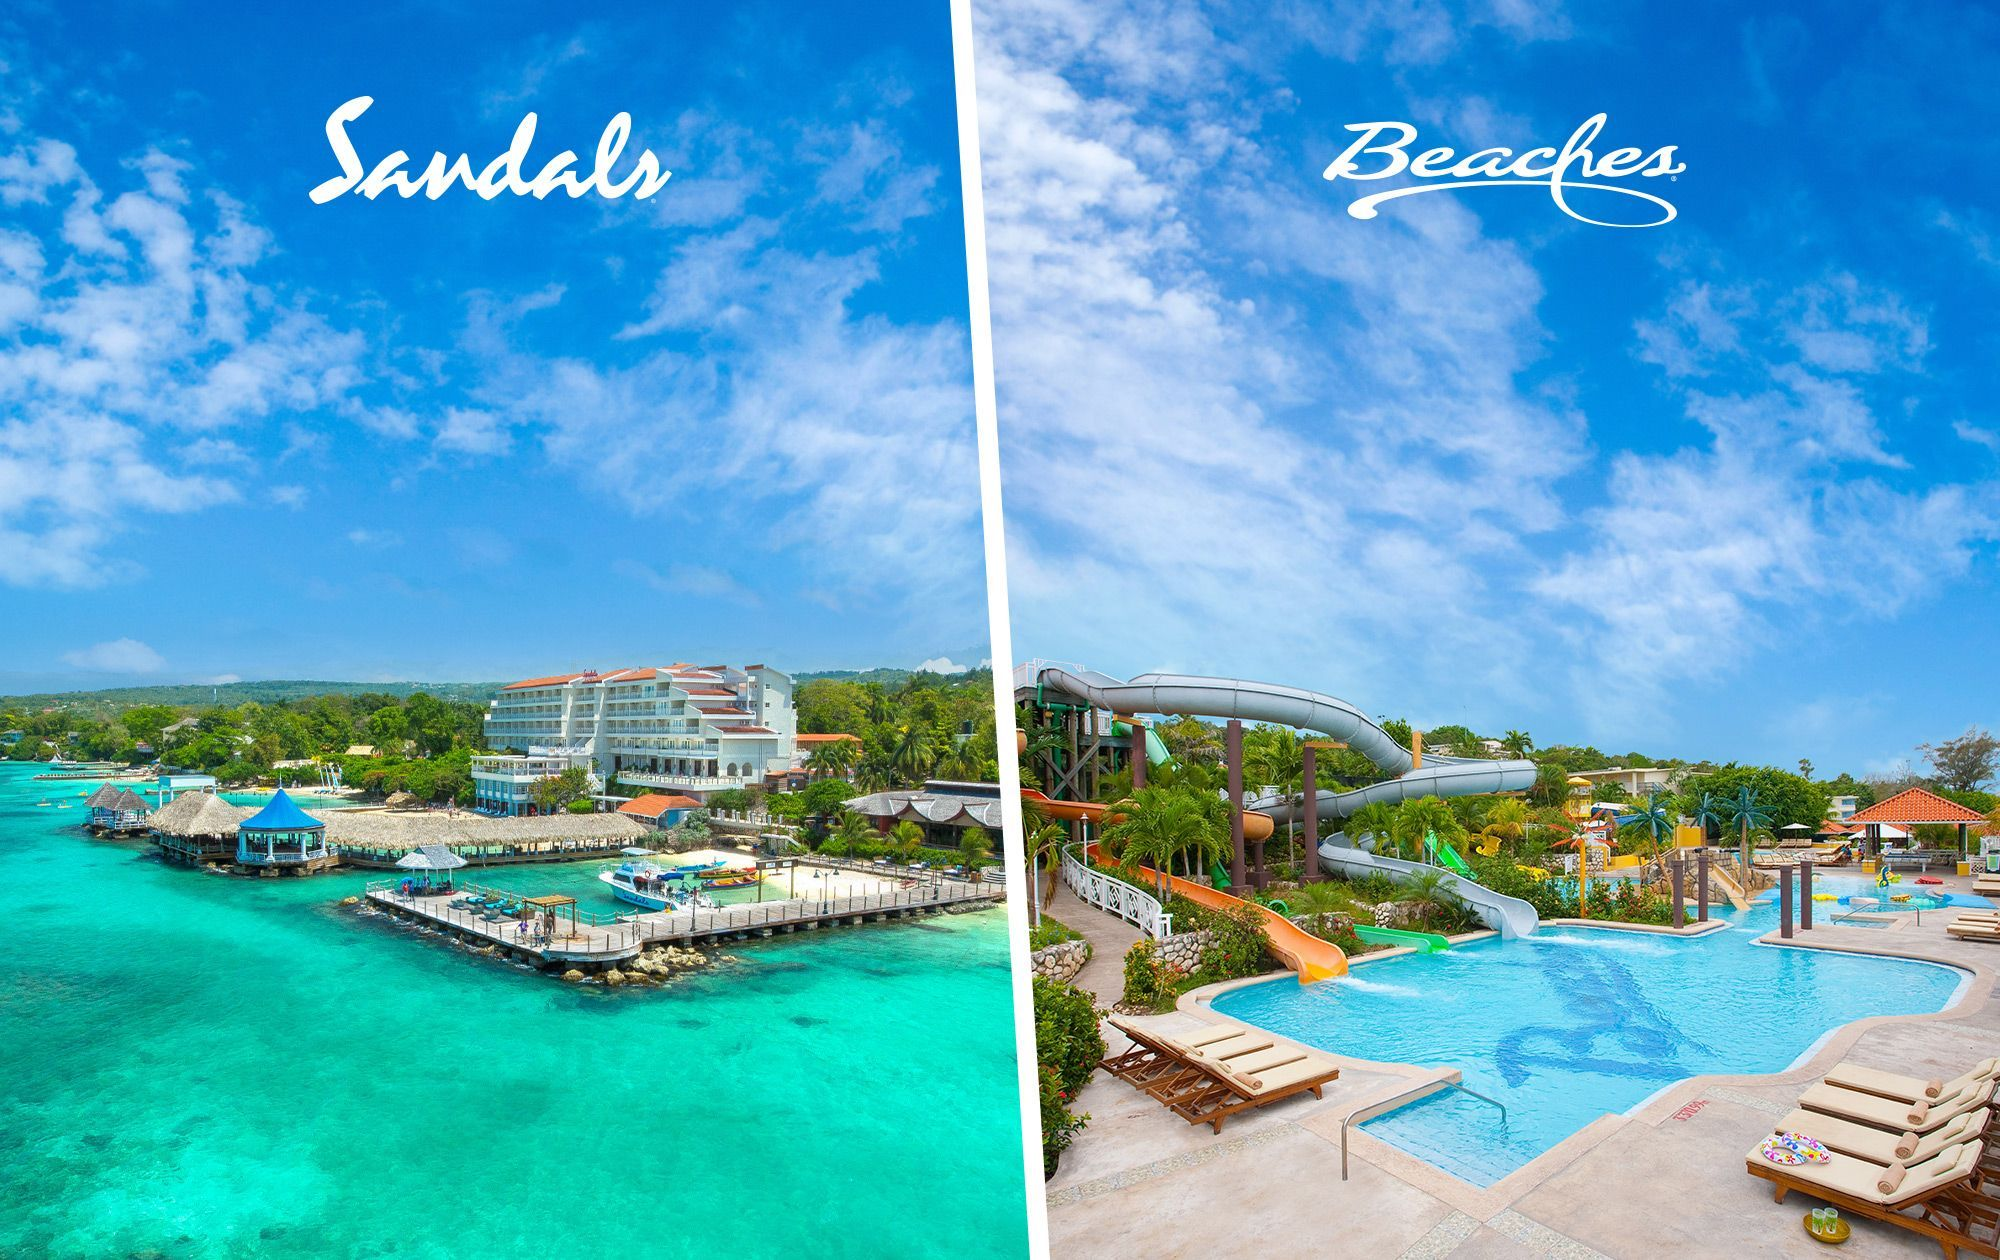 Sandals Ochi vs Beaches Ocho Rios